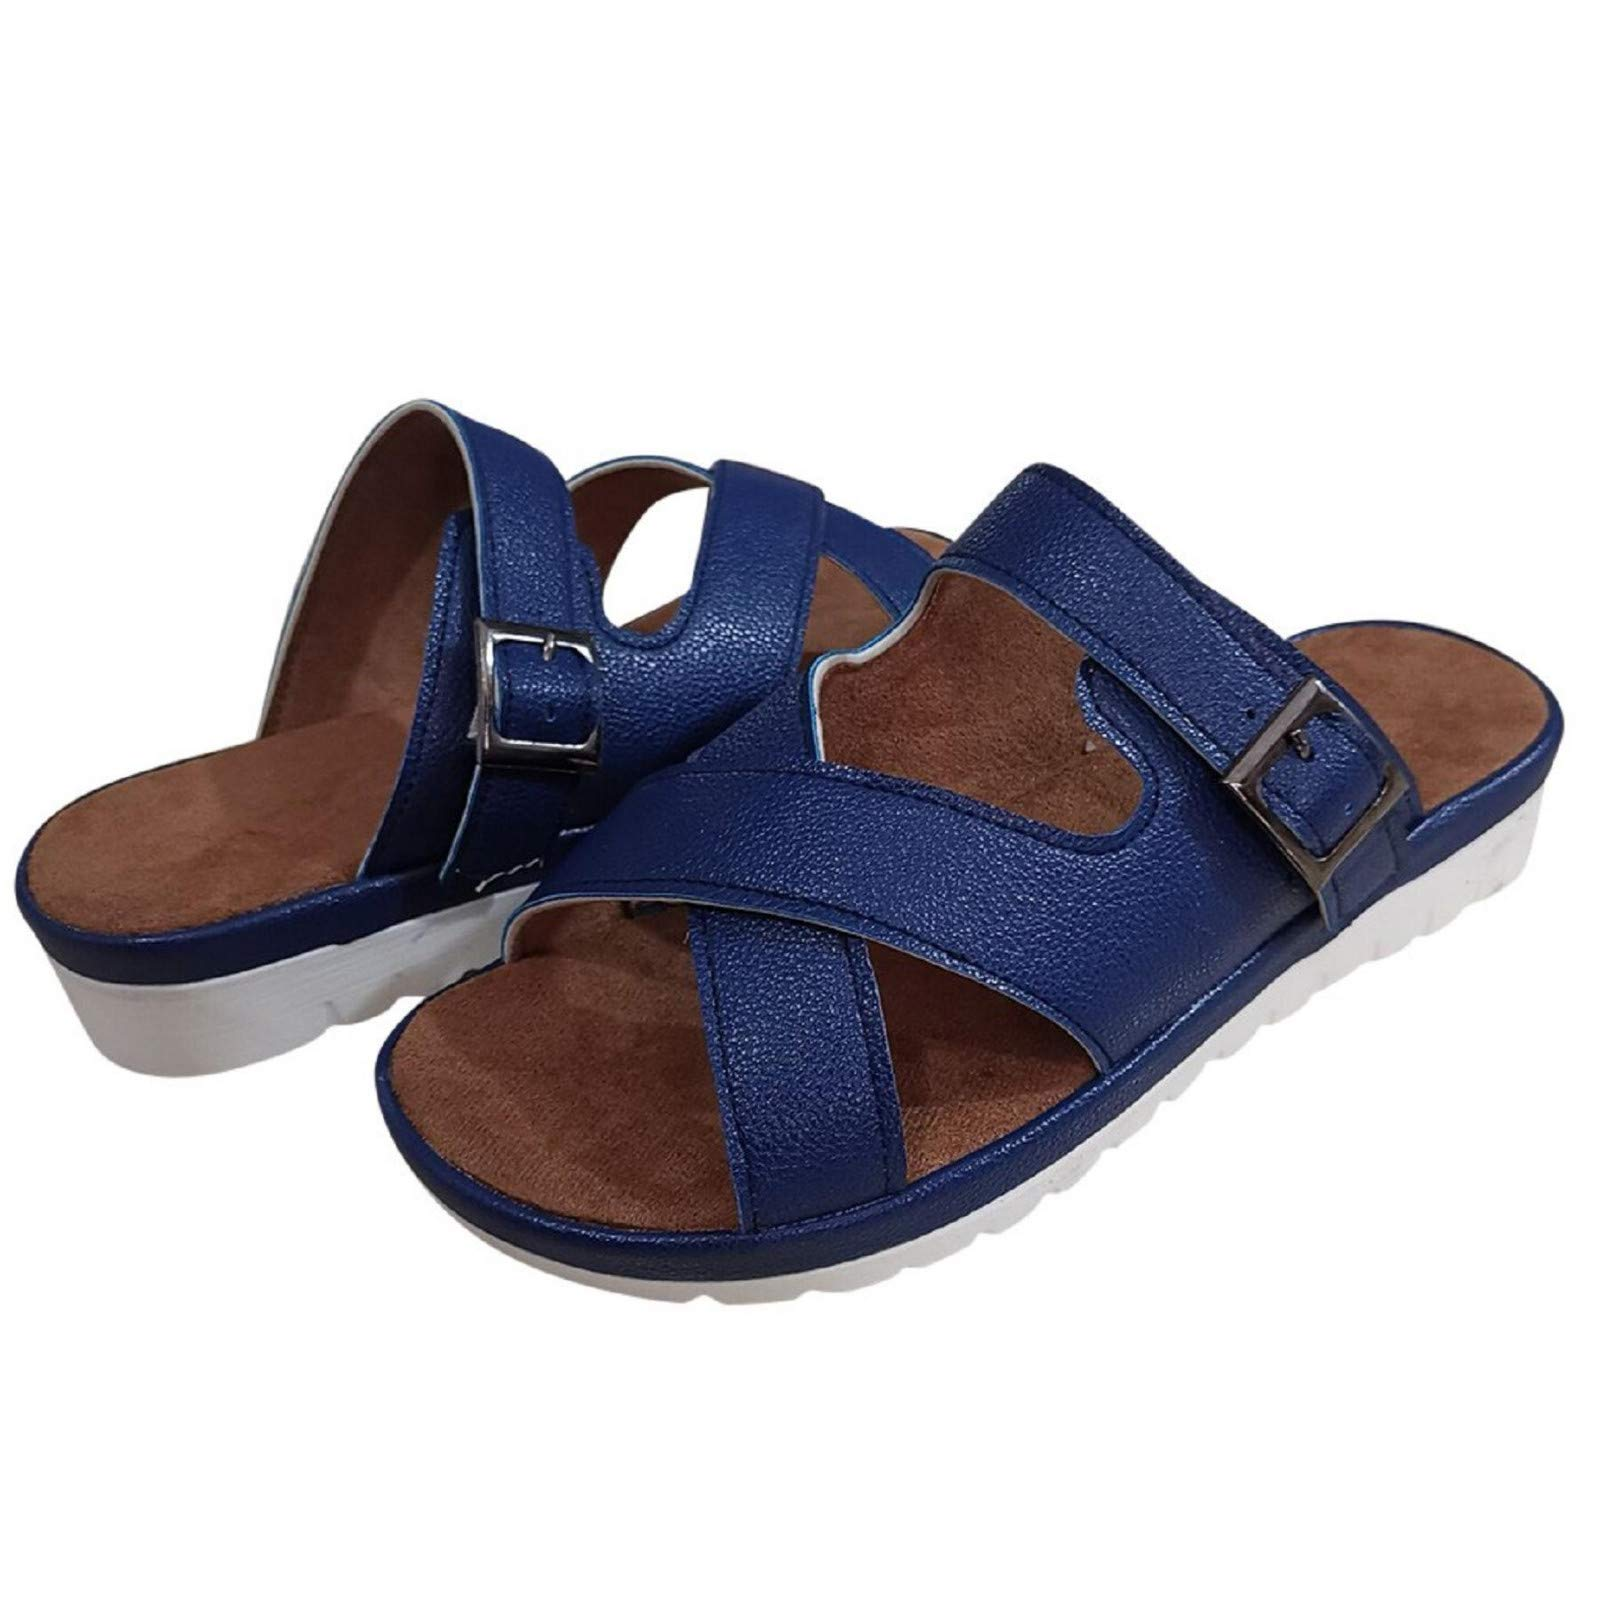 Women's Casual Home Walking Sandals Slipper, Comfy Cork Platform Flat Summer Beach Water Slippers Slide Sandals Blue